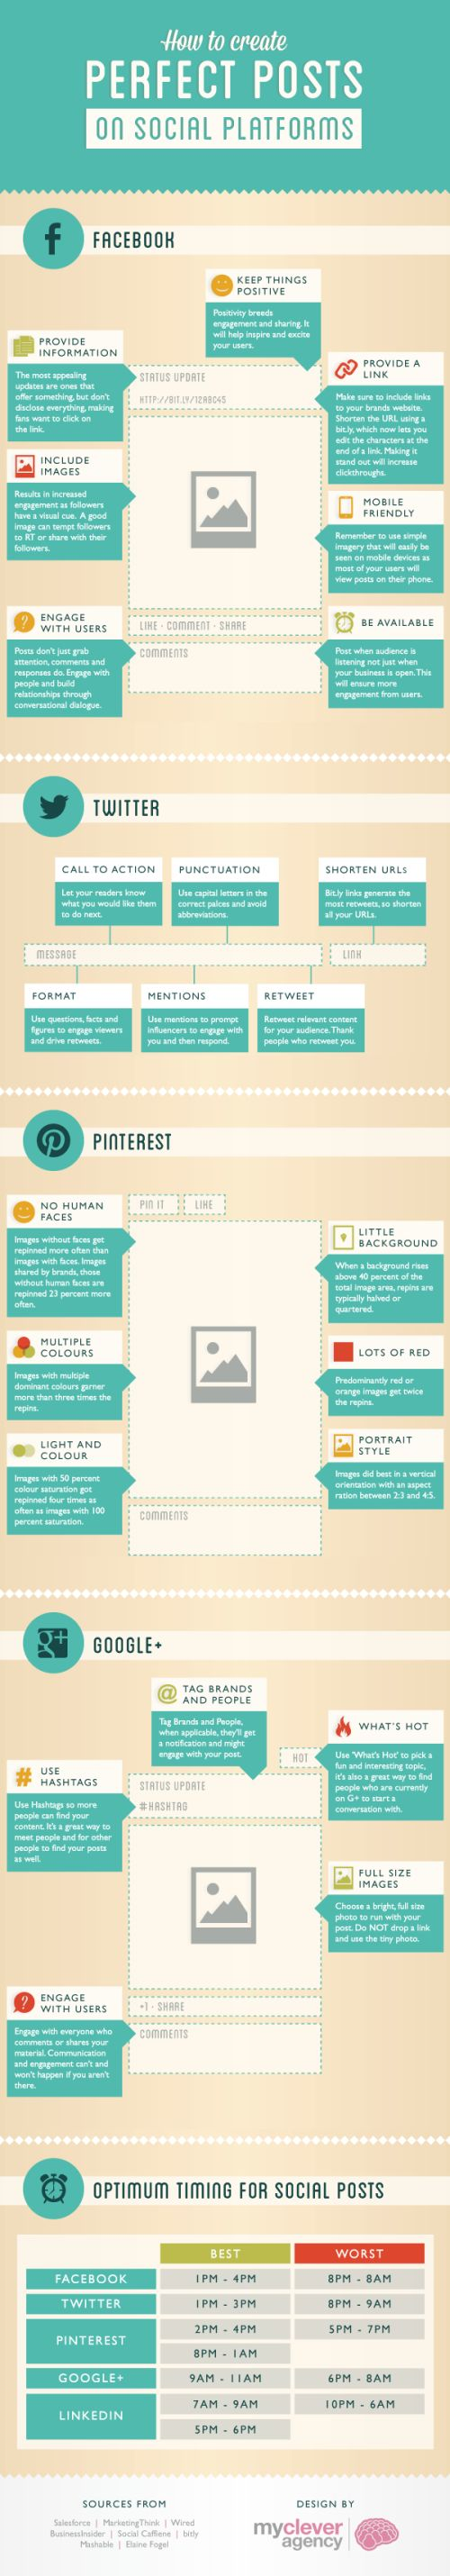 This #infographic gives some guidelines for better posting on Facebook, Google+, #Pinterest and Twitter. Have a look!